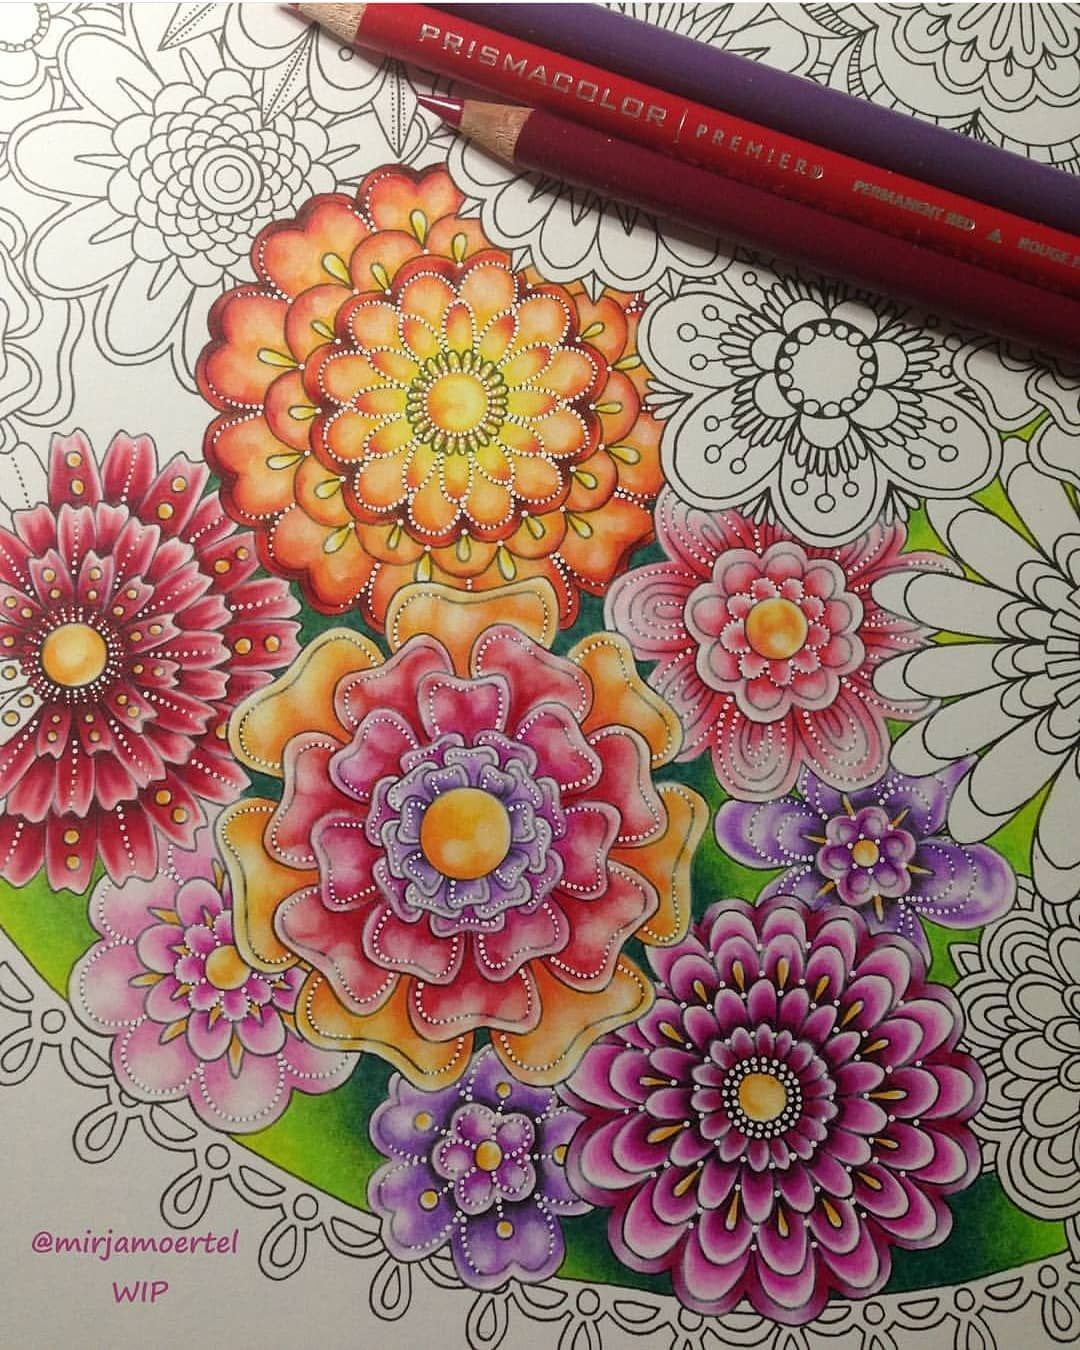 Find This Pin And More On Secret Garden Coloring Book By Gwenwitch